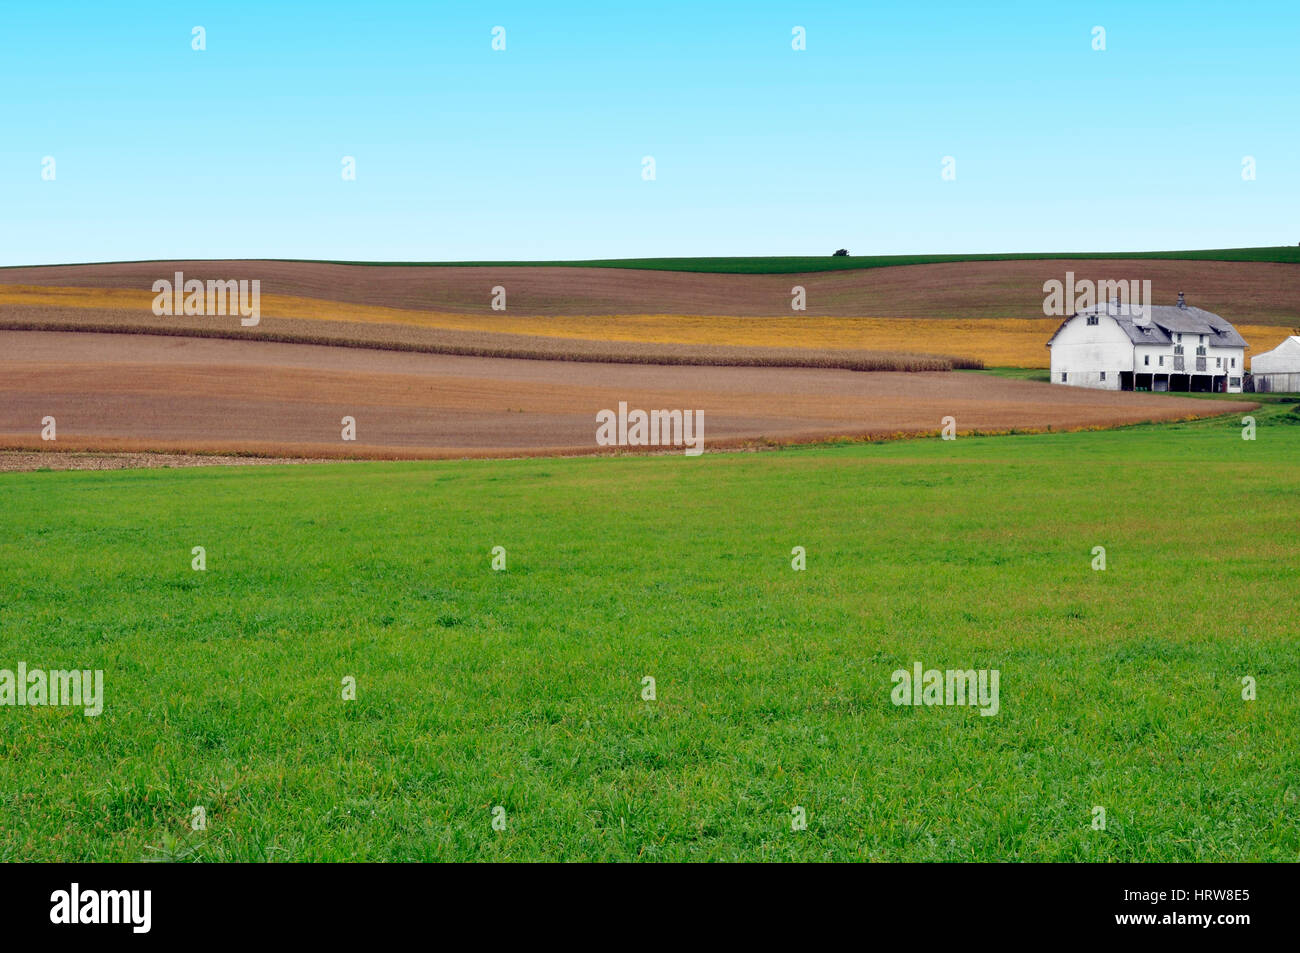 Meadows of crops and pastureland, here in the state of Pennsylvanian, USA - Stock Image